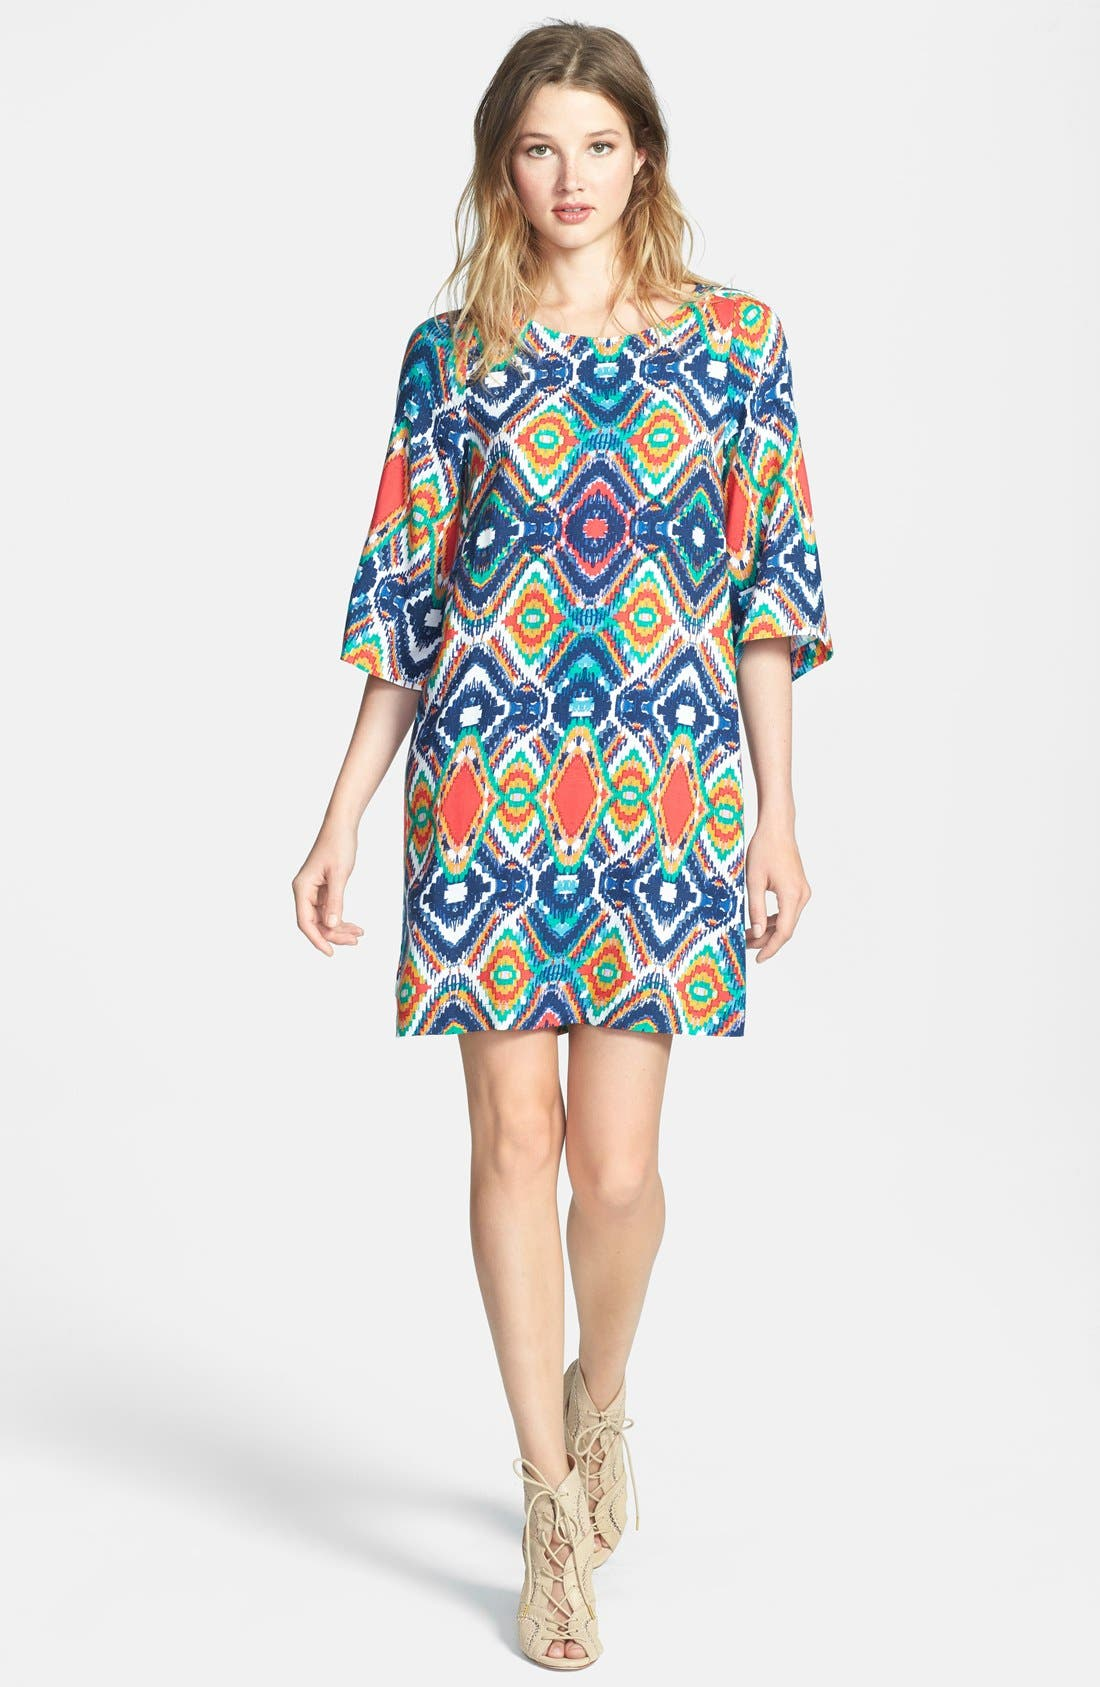 Alternate Image 1 Selected - Ella Moss 'Totem' Geo Print Shift Dress